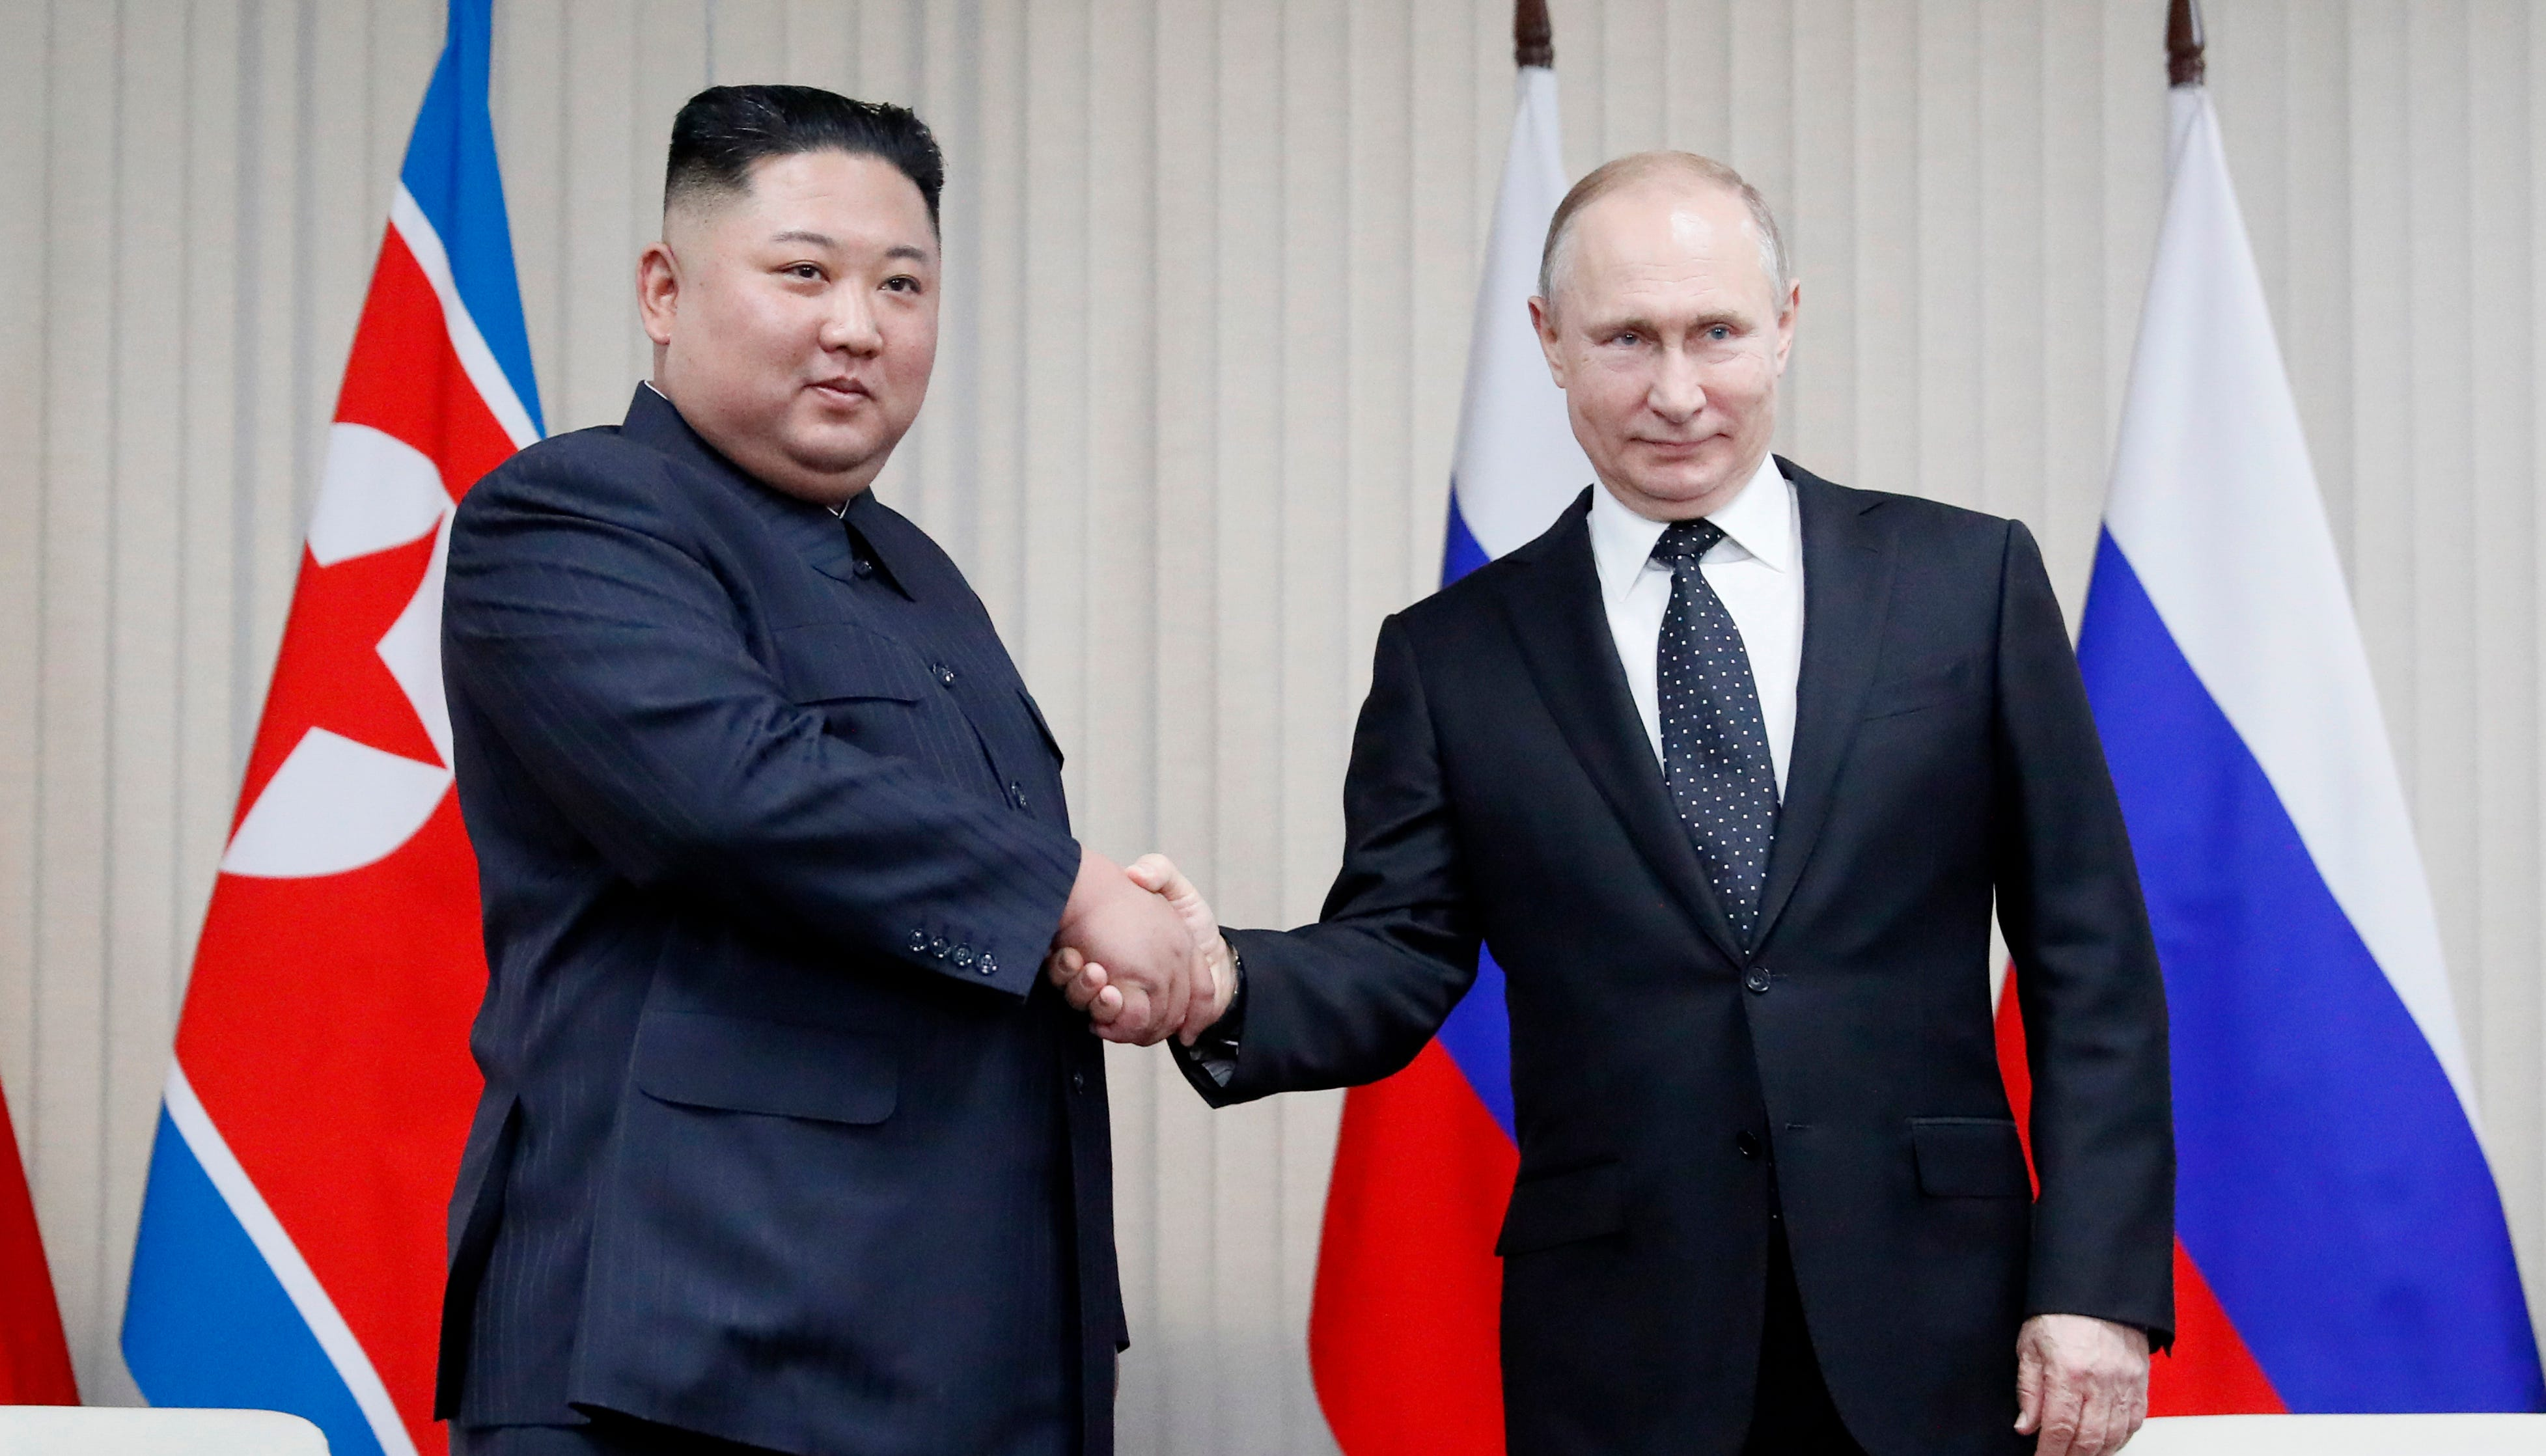 Russian President Vladimir Putin, right, and North Korea's leader Kim Jong Un shake hands during their meeting on Thursday in Vladivostok, Russia.